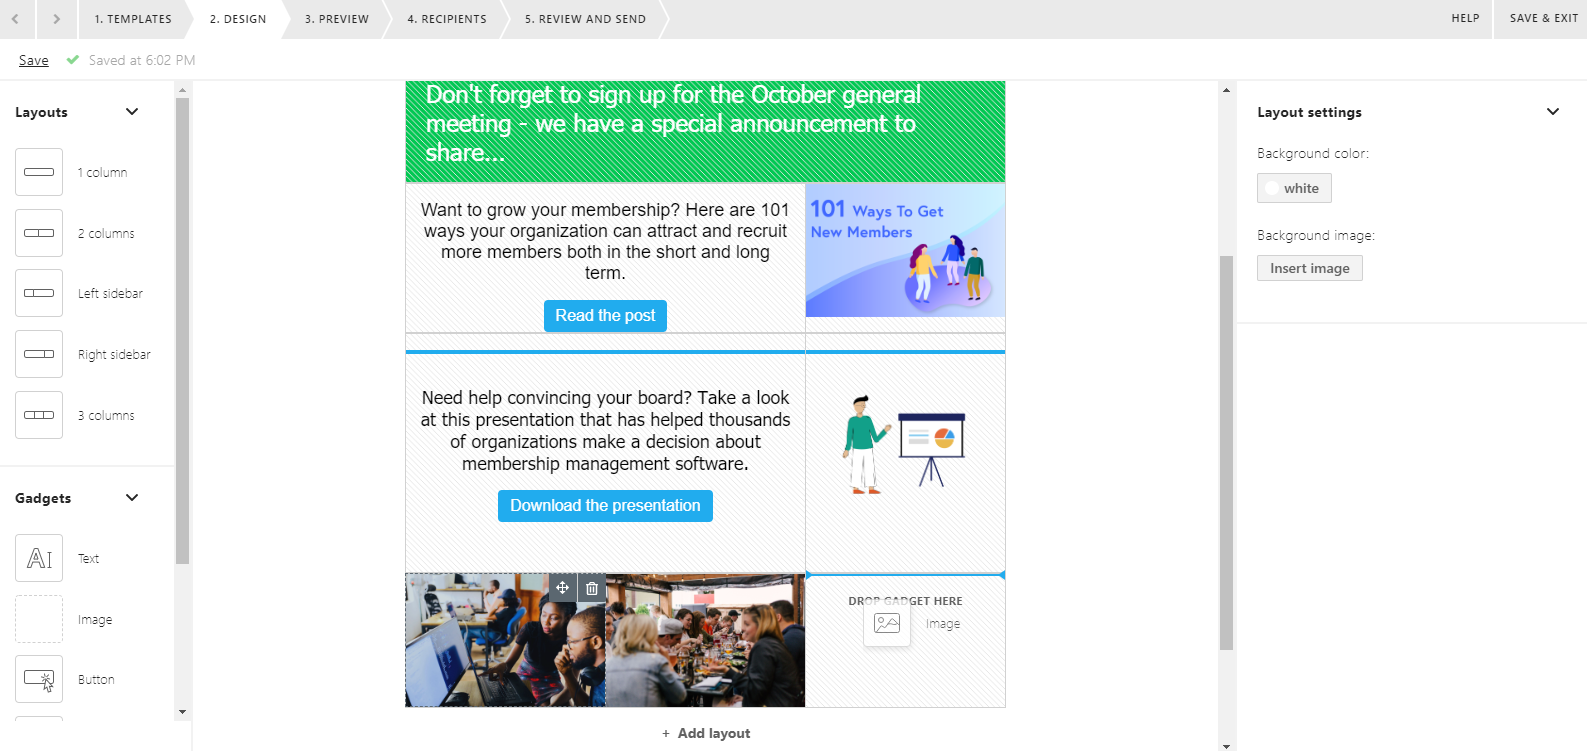 Email editor update 1